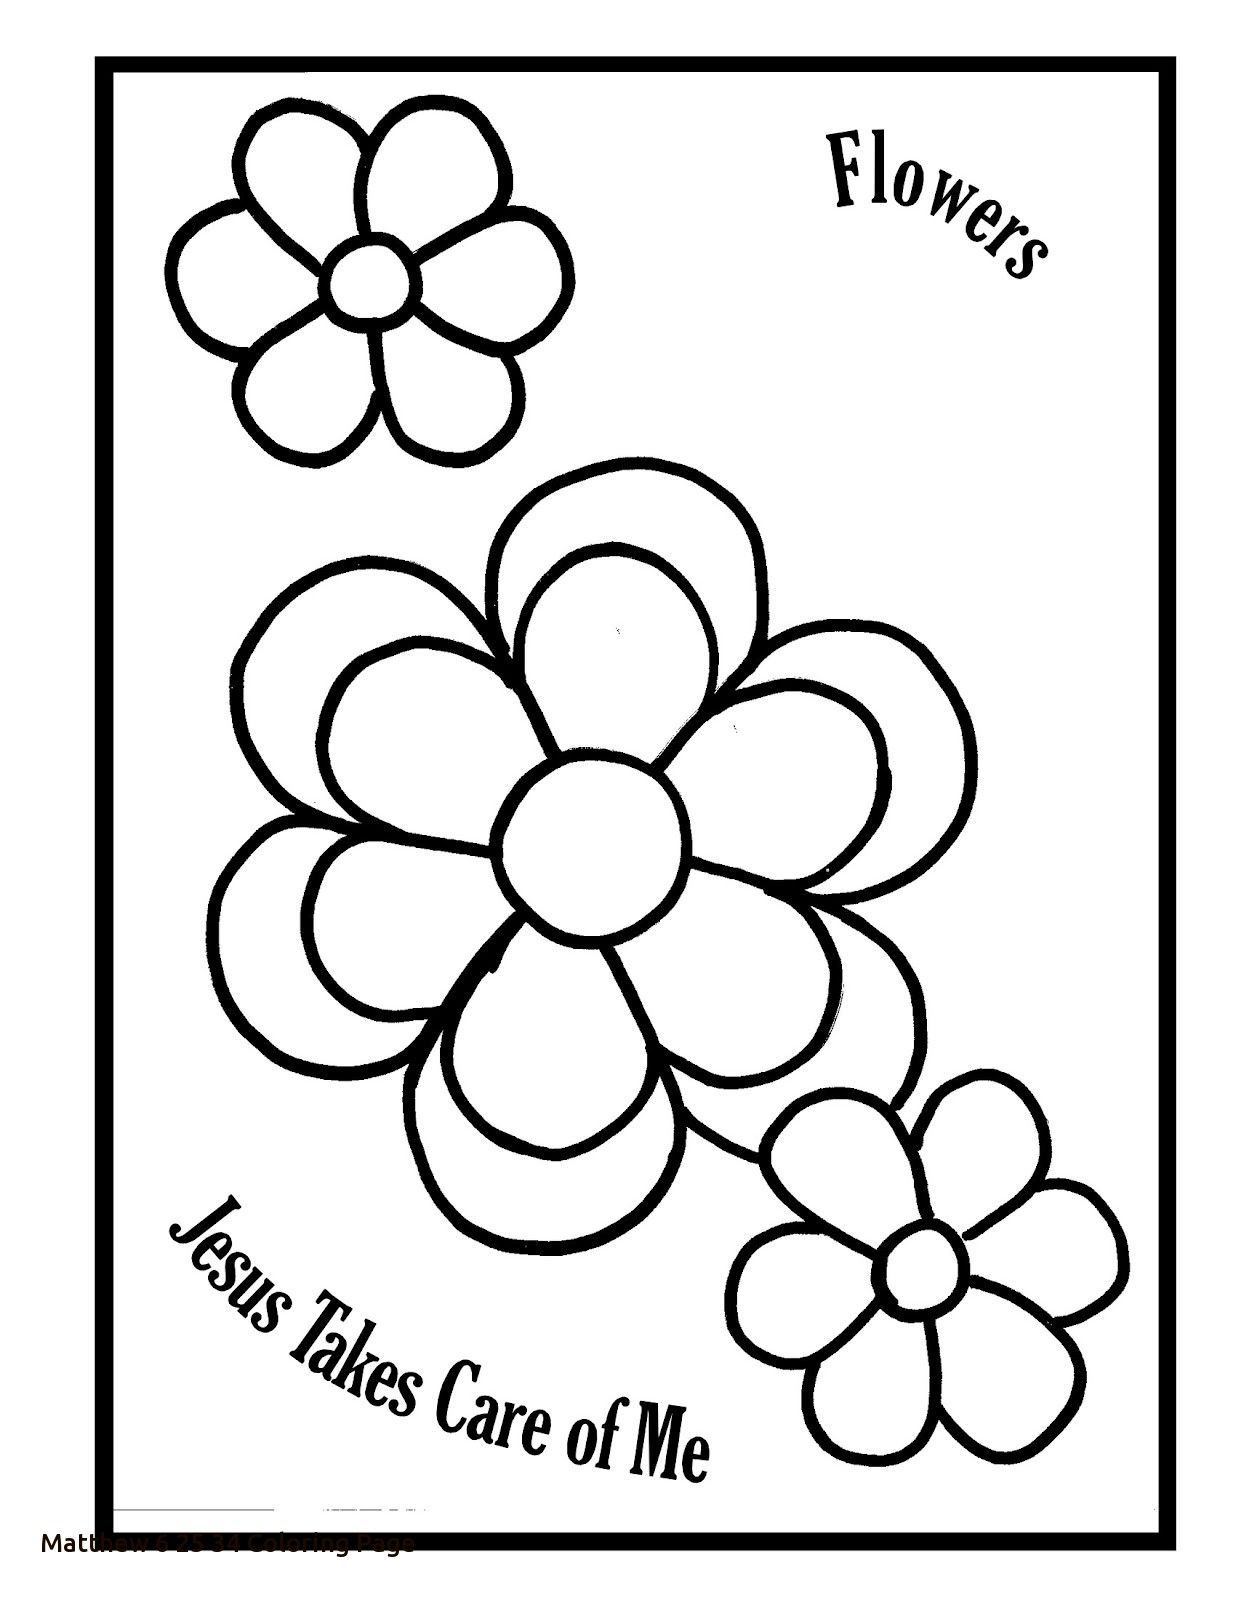 Matthew 6 25 34 coloring page for glum of matthew 6 25 34 coloring page